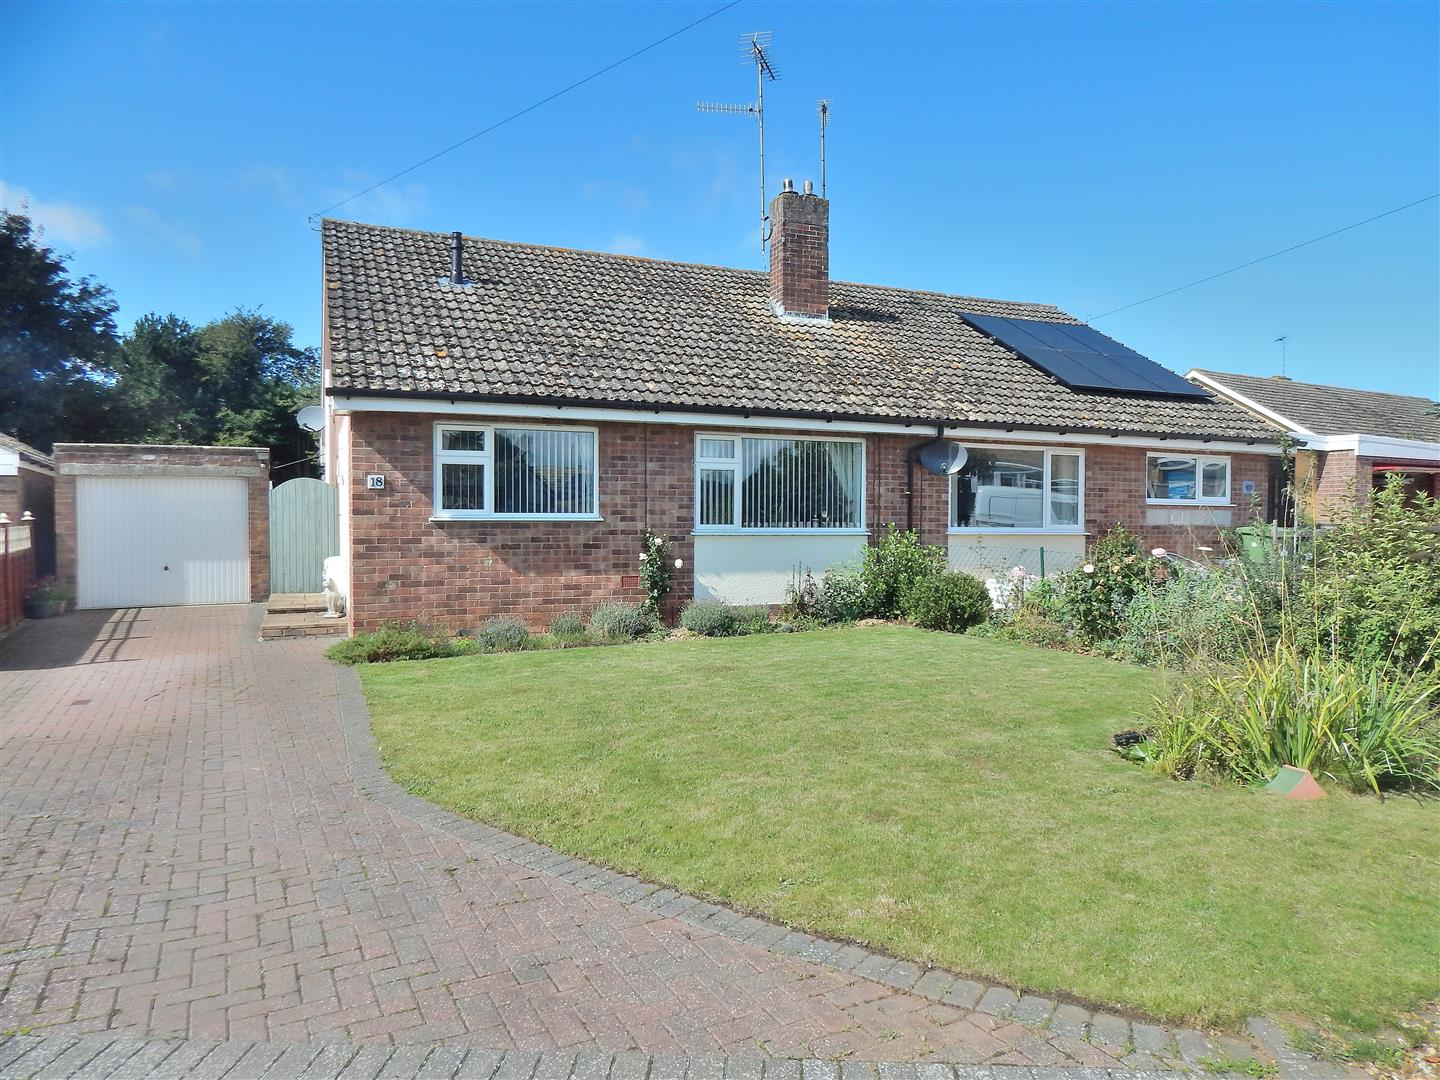 2 bed semi-detached bungalow for sale in King's Lynn, PE31 6JL - Property Image 1